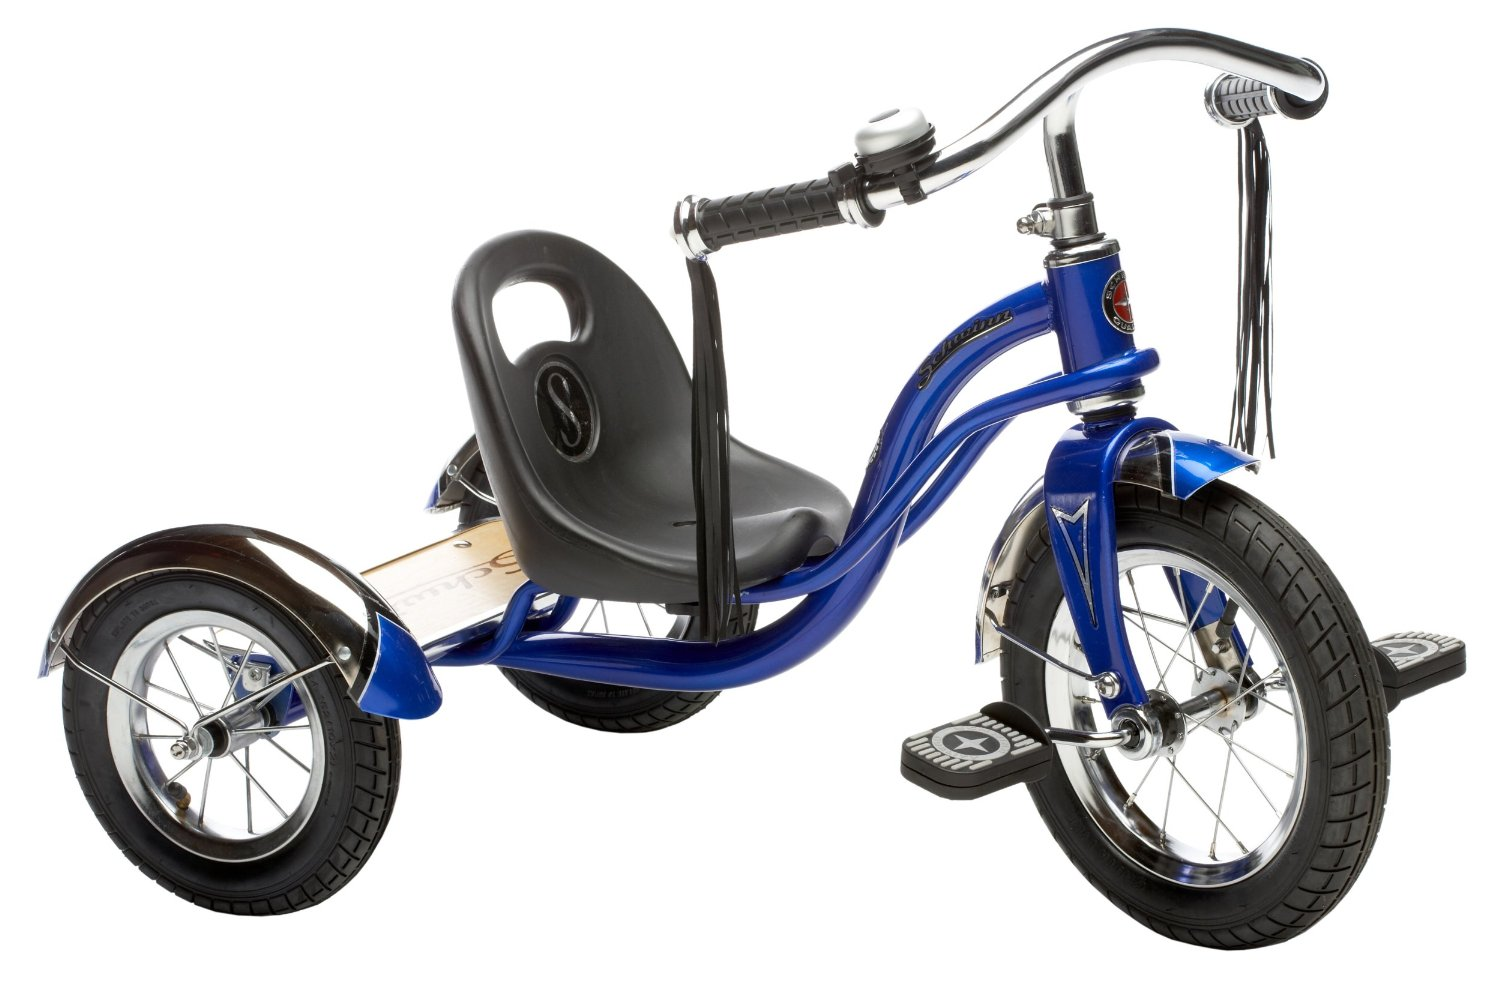 Best Tricycle For Toddlers 3 Of The Best Trikes